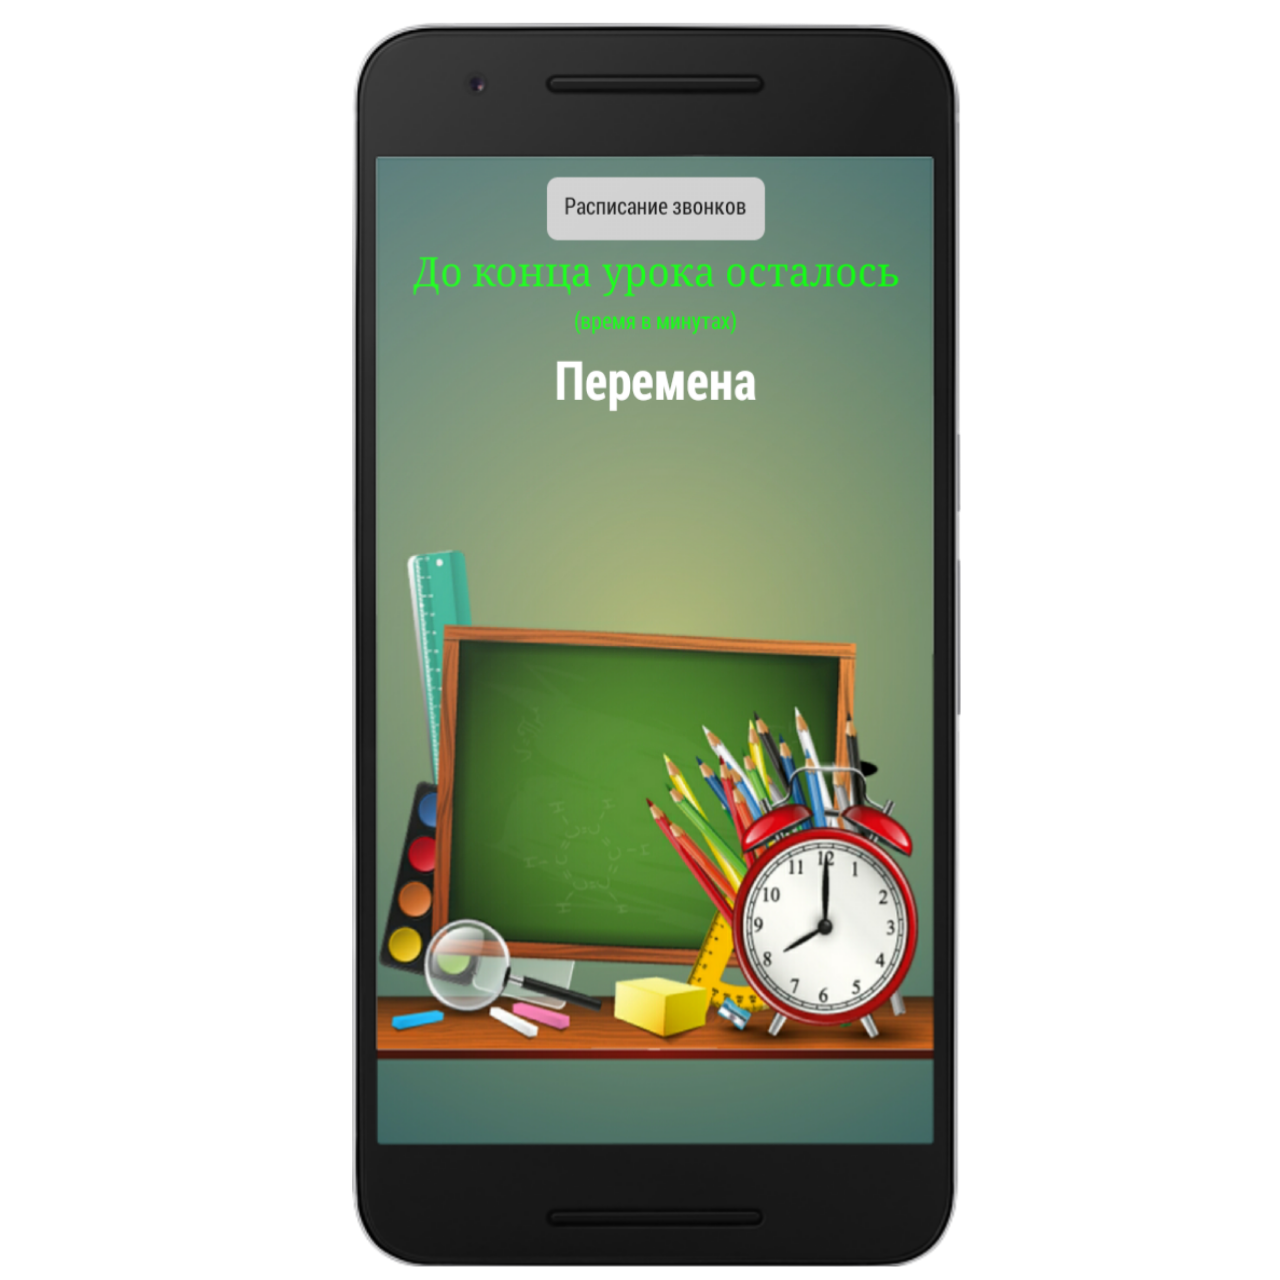 TimeSchool for android